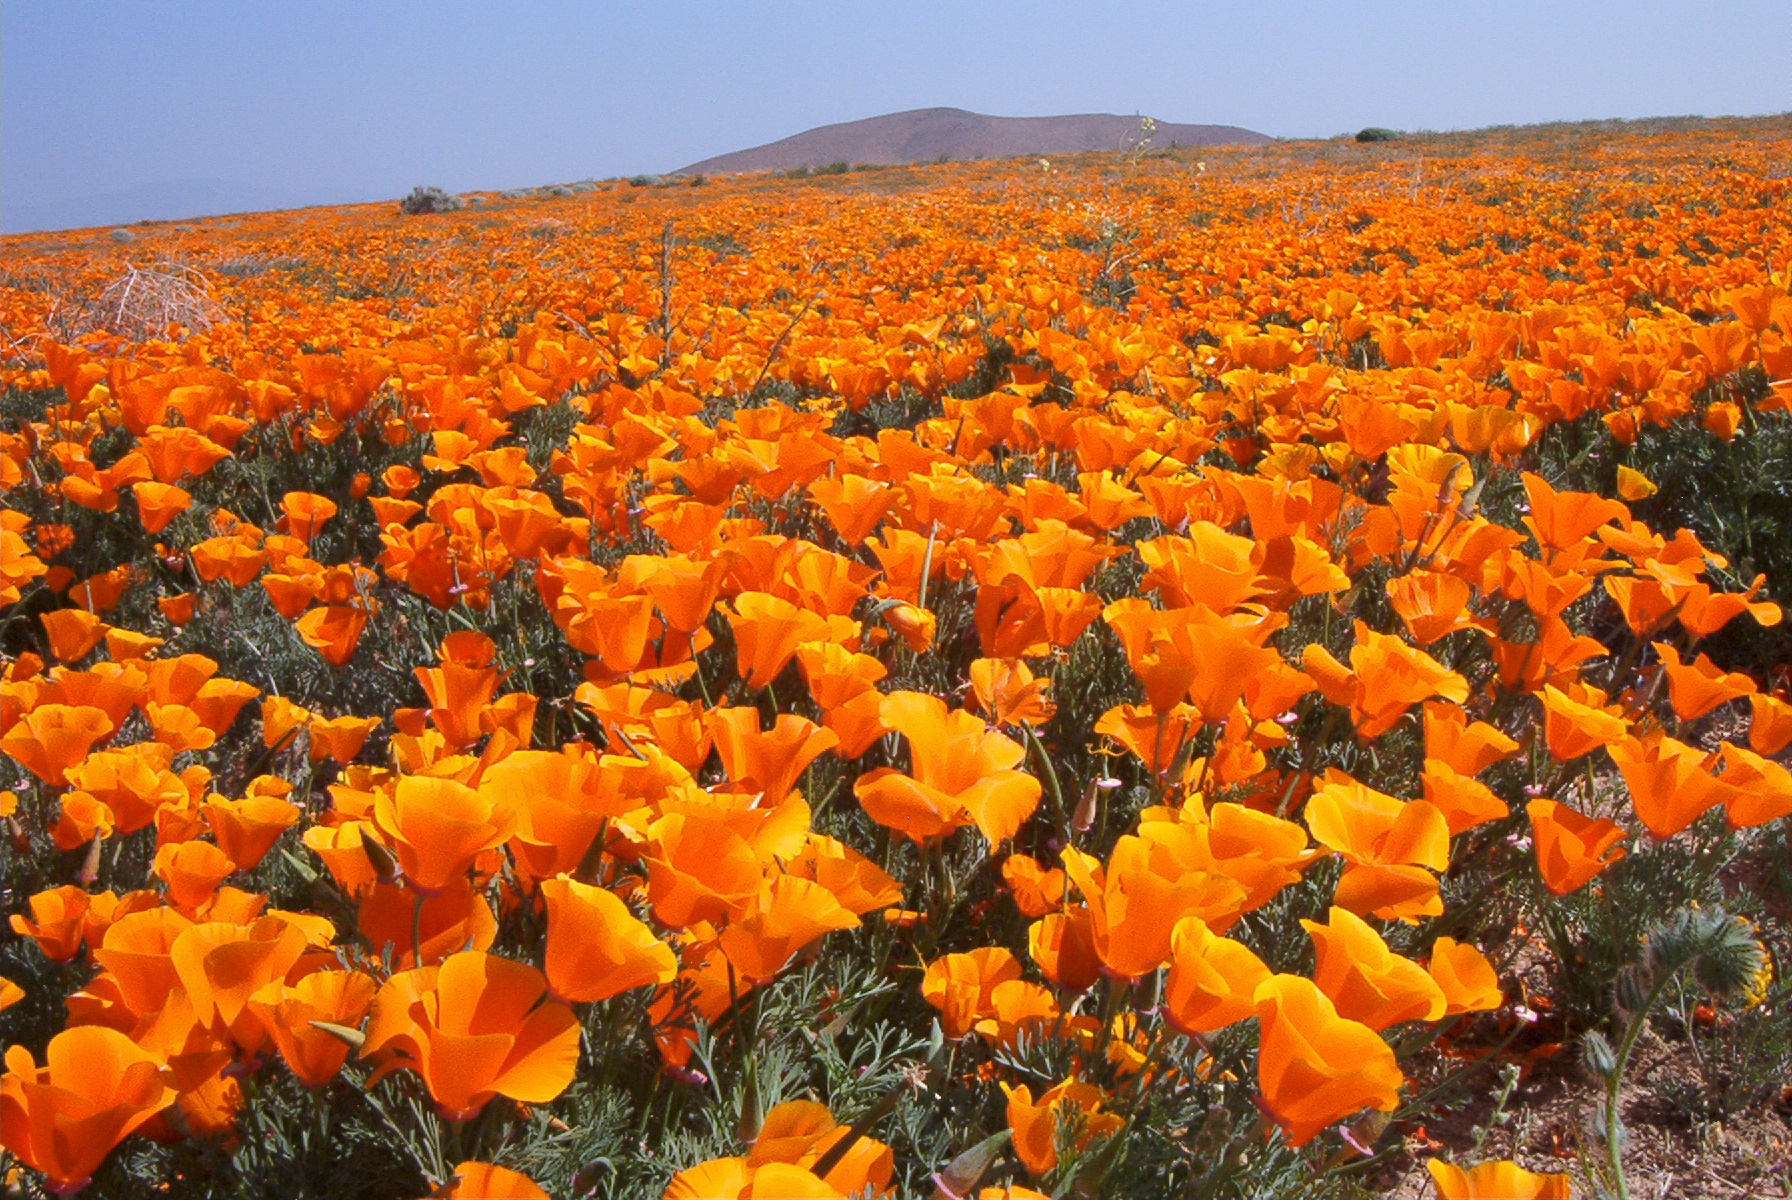 Antelope Valley Poppy Reserve에 대한 이미지 검색결과